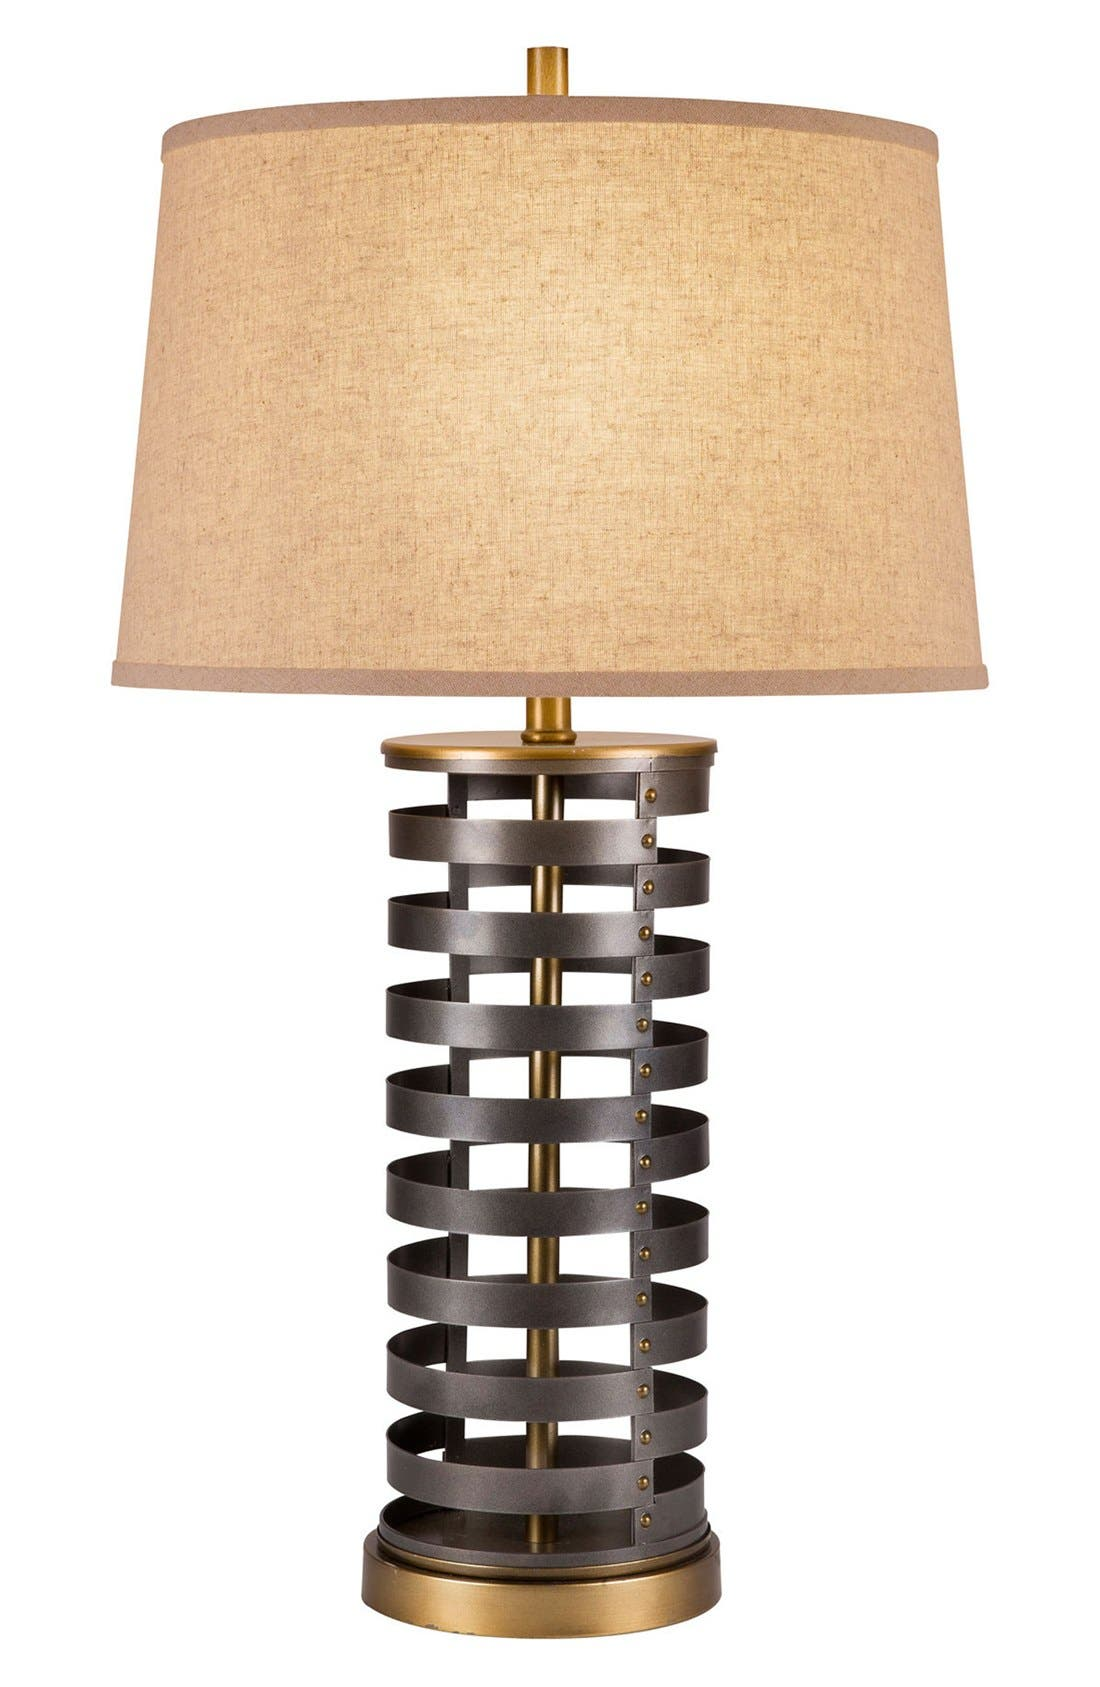 Main Image - JAlexander 'Stacked Disc' Table Lamp